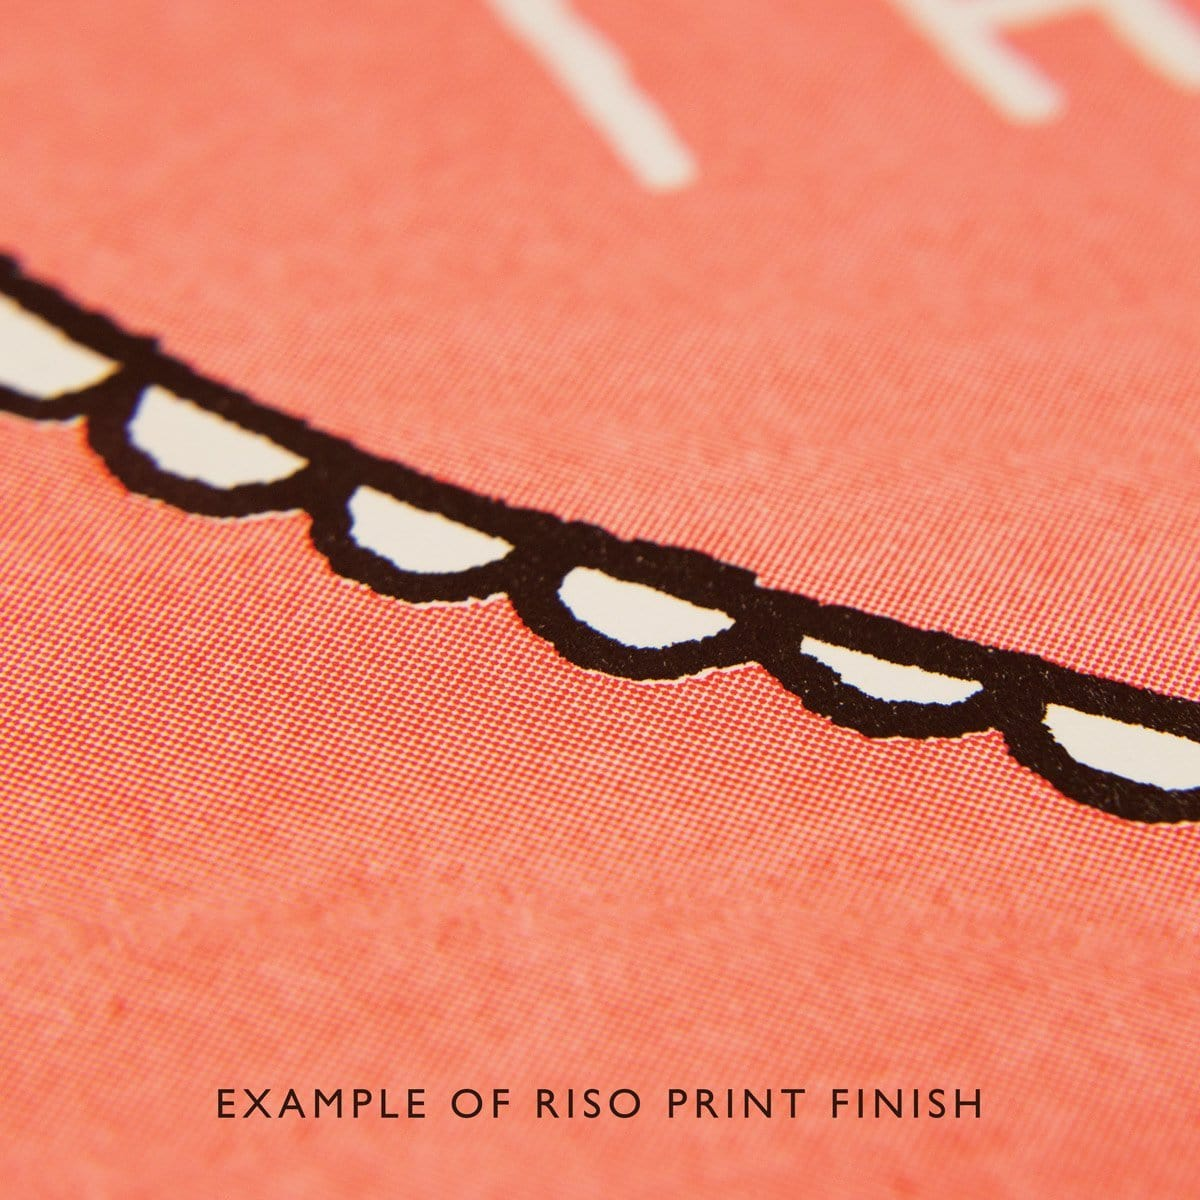 Peach paper close up of riso print texture, with black and white semi circle detailing